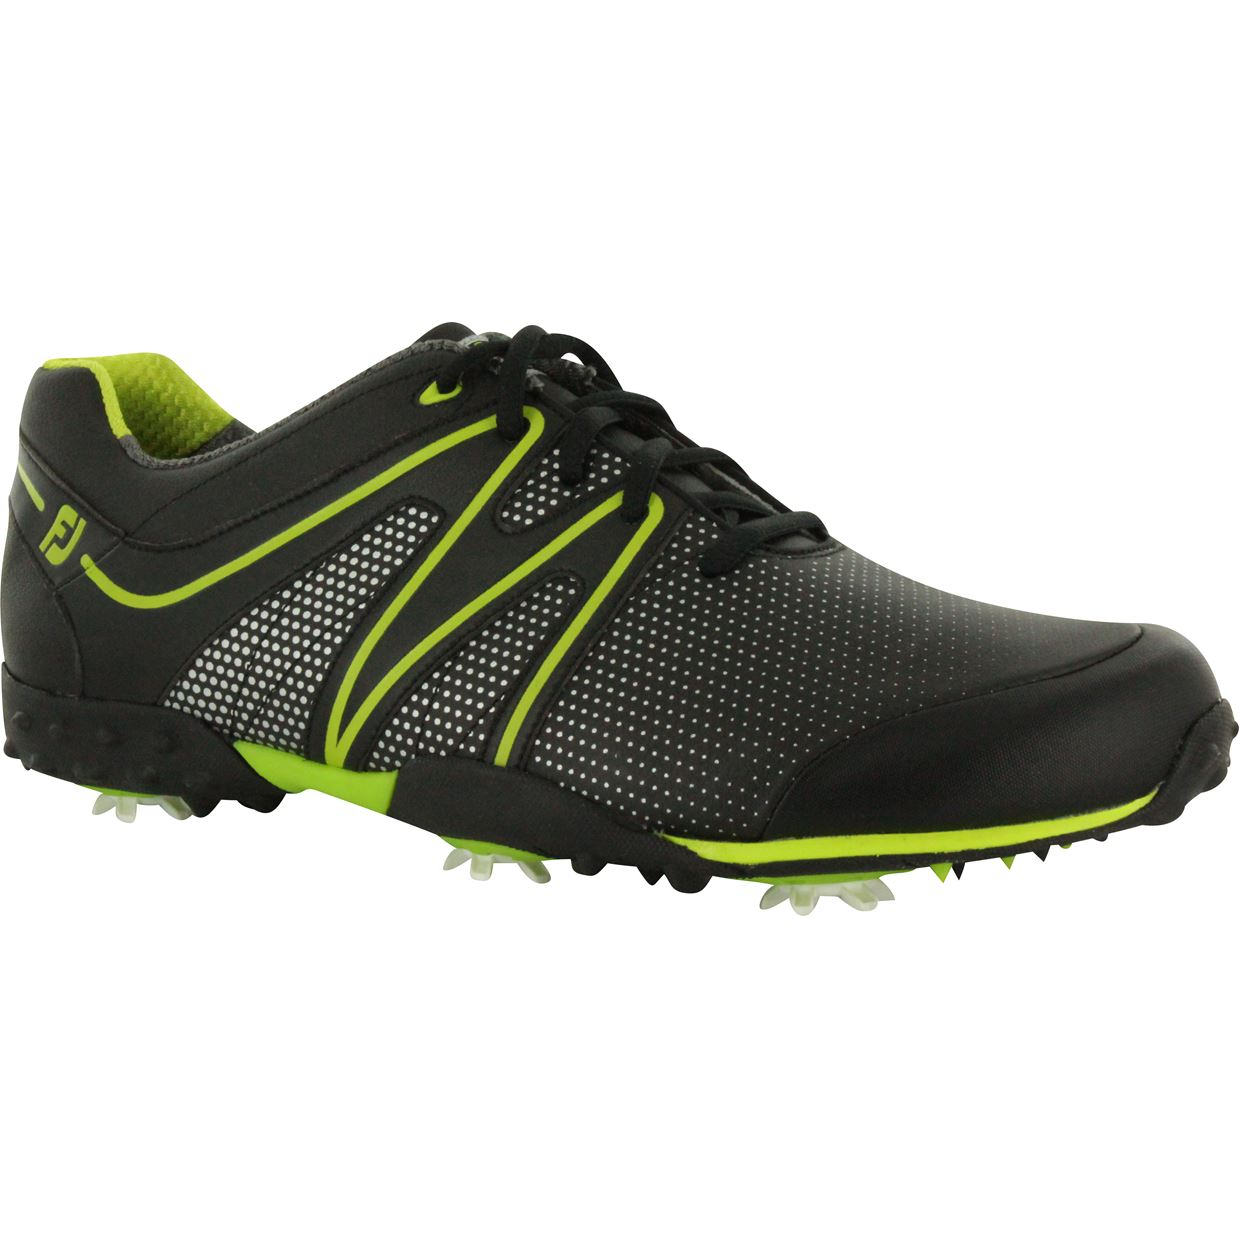 footjoy m project Footjoy m:project™ golf shoes - 55124 footjoy m:project™ golf shoes 55124 - soft full grain leather uppers by pittards provide breathability, support and comfort.